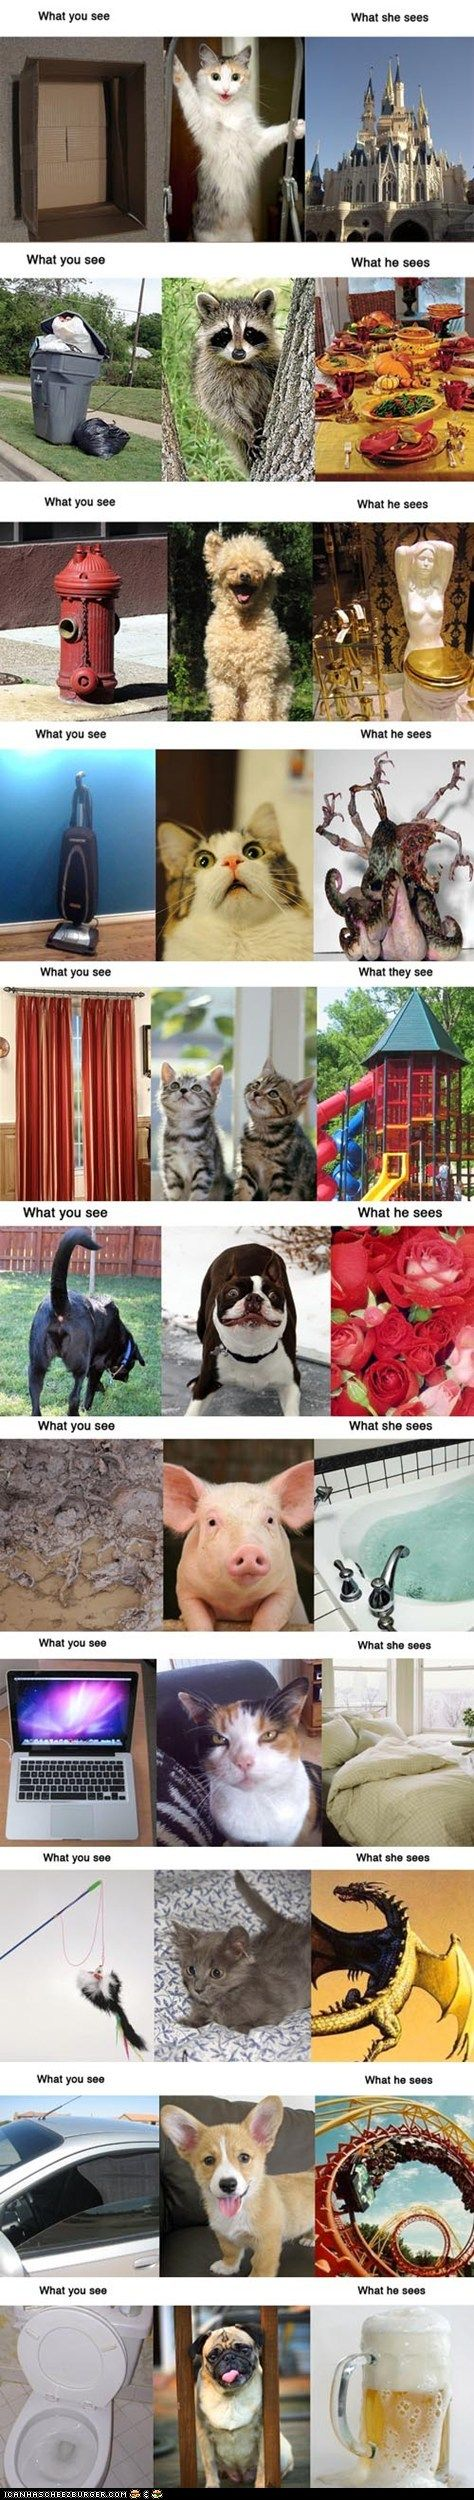 funny pictures - What You See vs. What Animals See